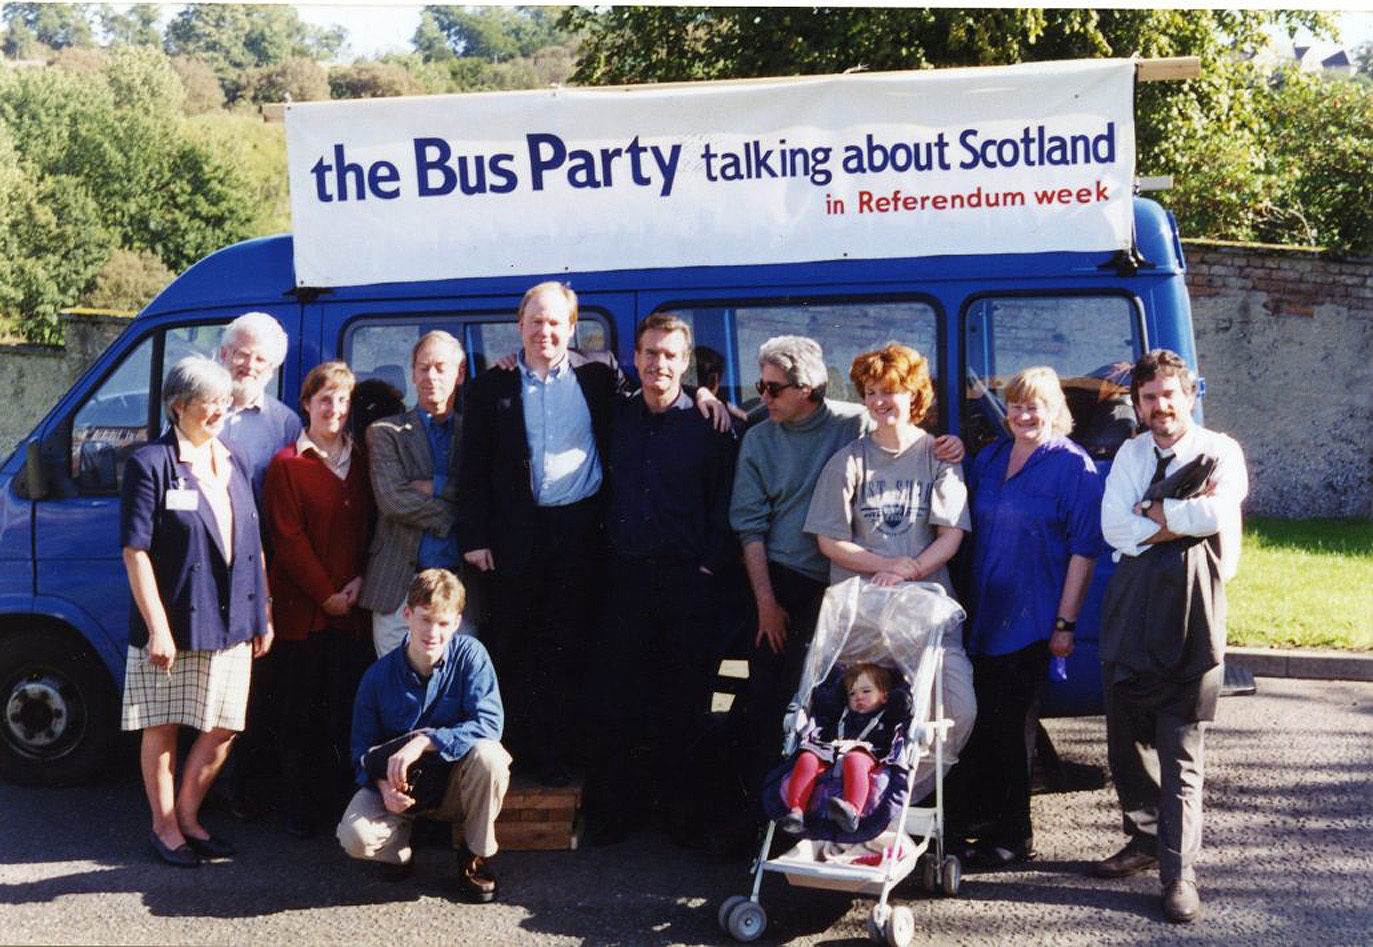 In 1997, this Bus Party undertook a dash around Scotland in the last days of the devolution referendum campaign (The Scottish Political Archive / Stirling University)